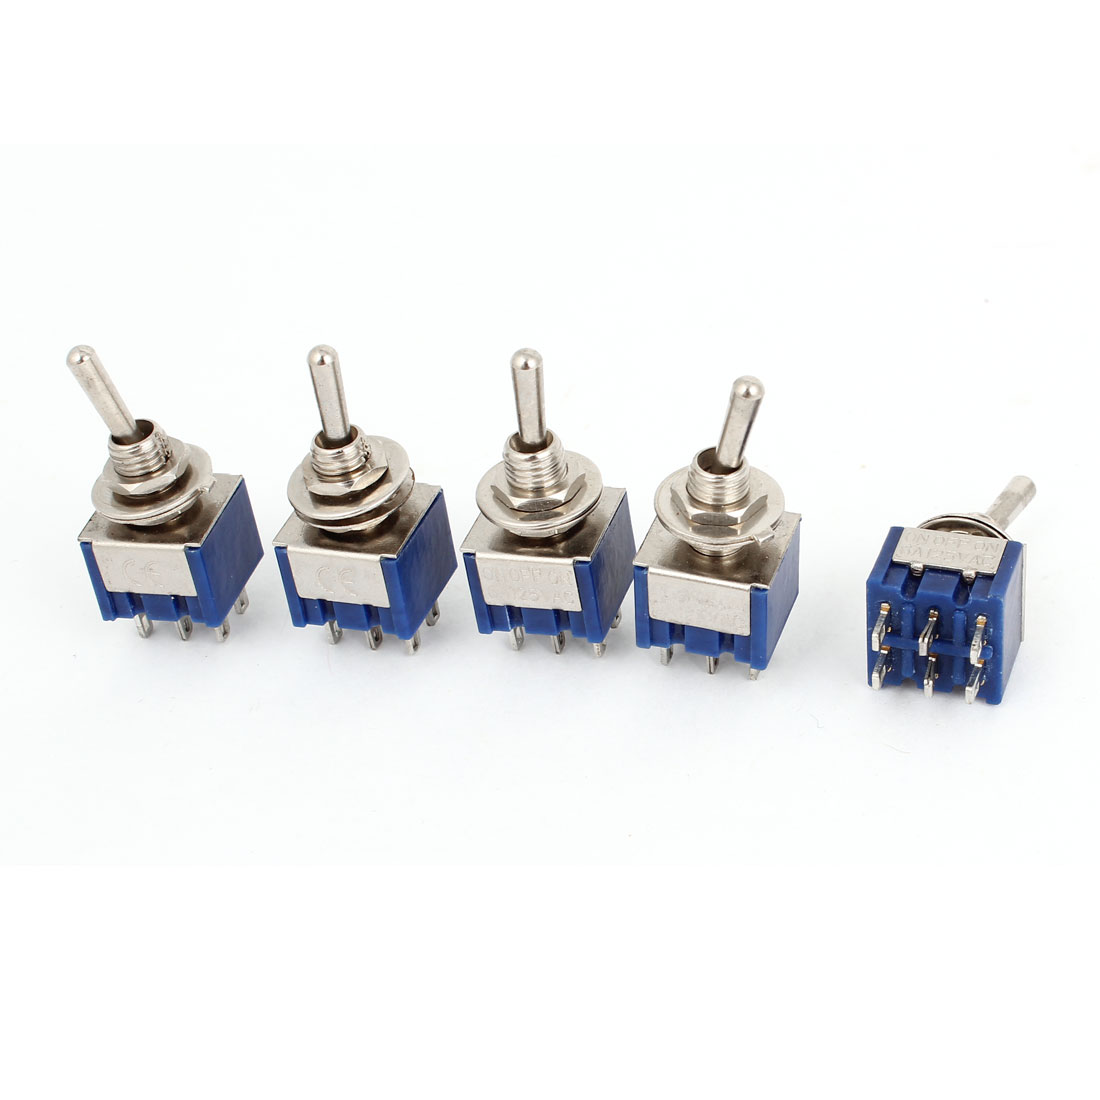 5 Pcs AC 125V 2A 6 Terminals On/Off/On 3 Position DPDT Toggle Switch